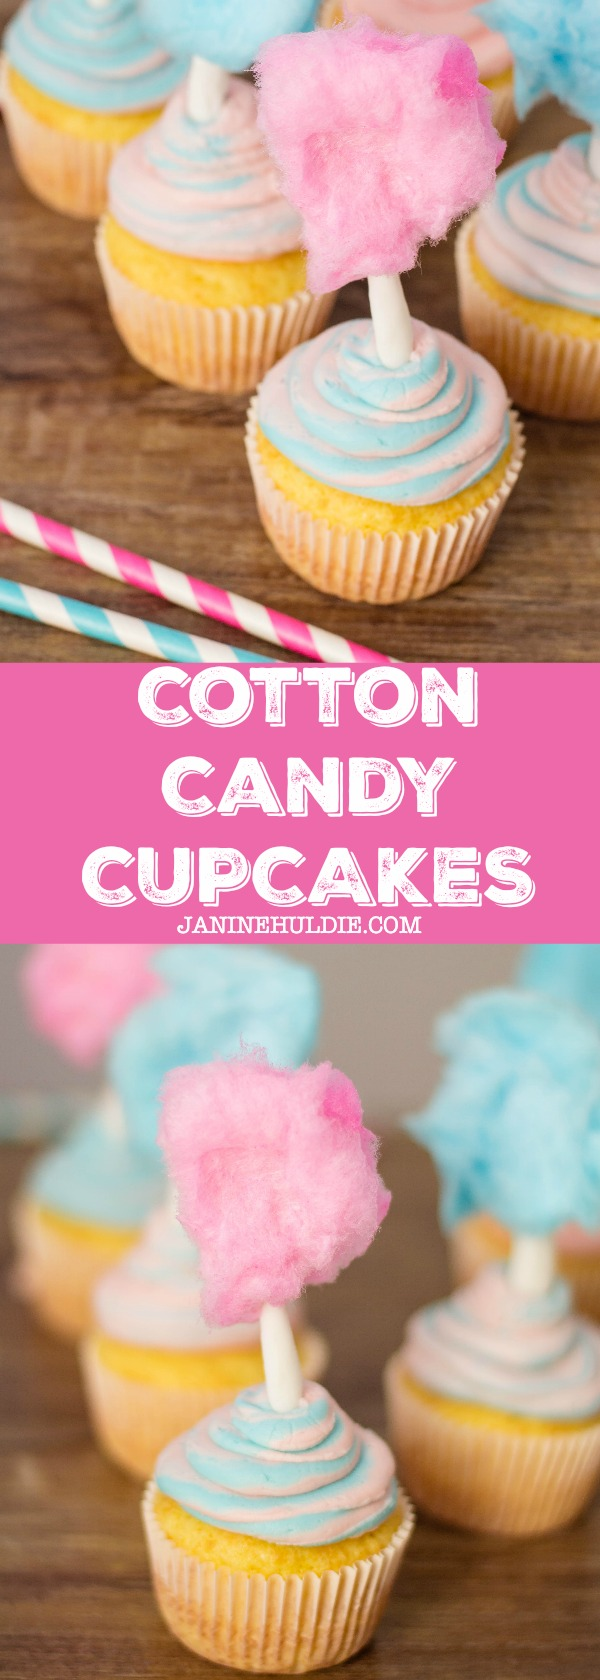 Cotton Candy Cupcakes Recipe